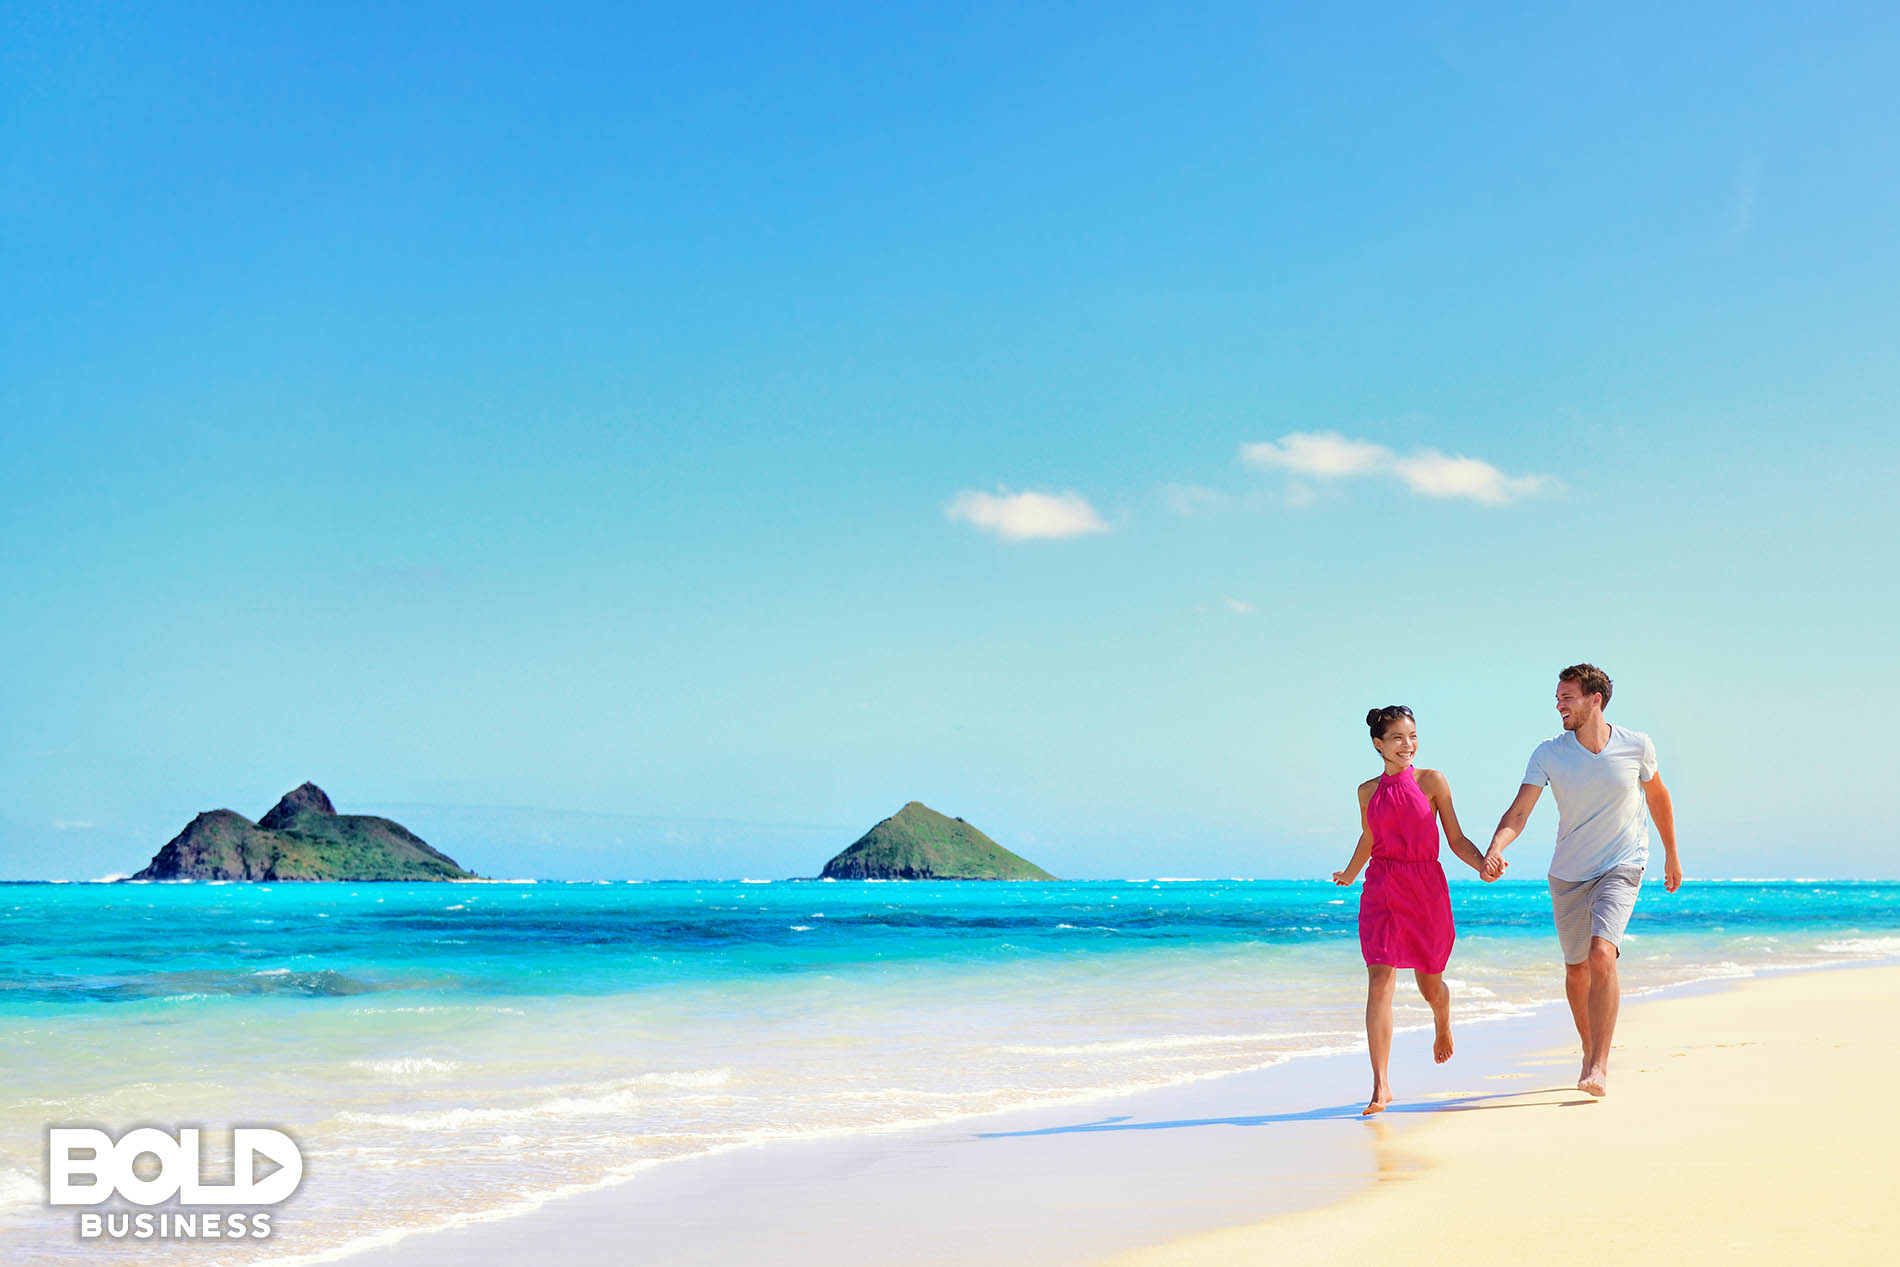 A couple on vacation on a lonely beach